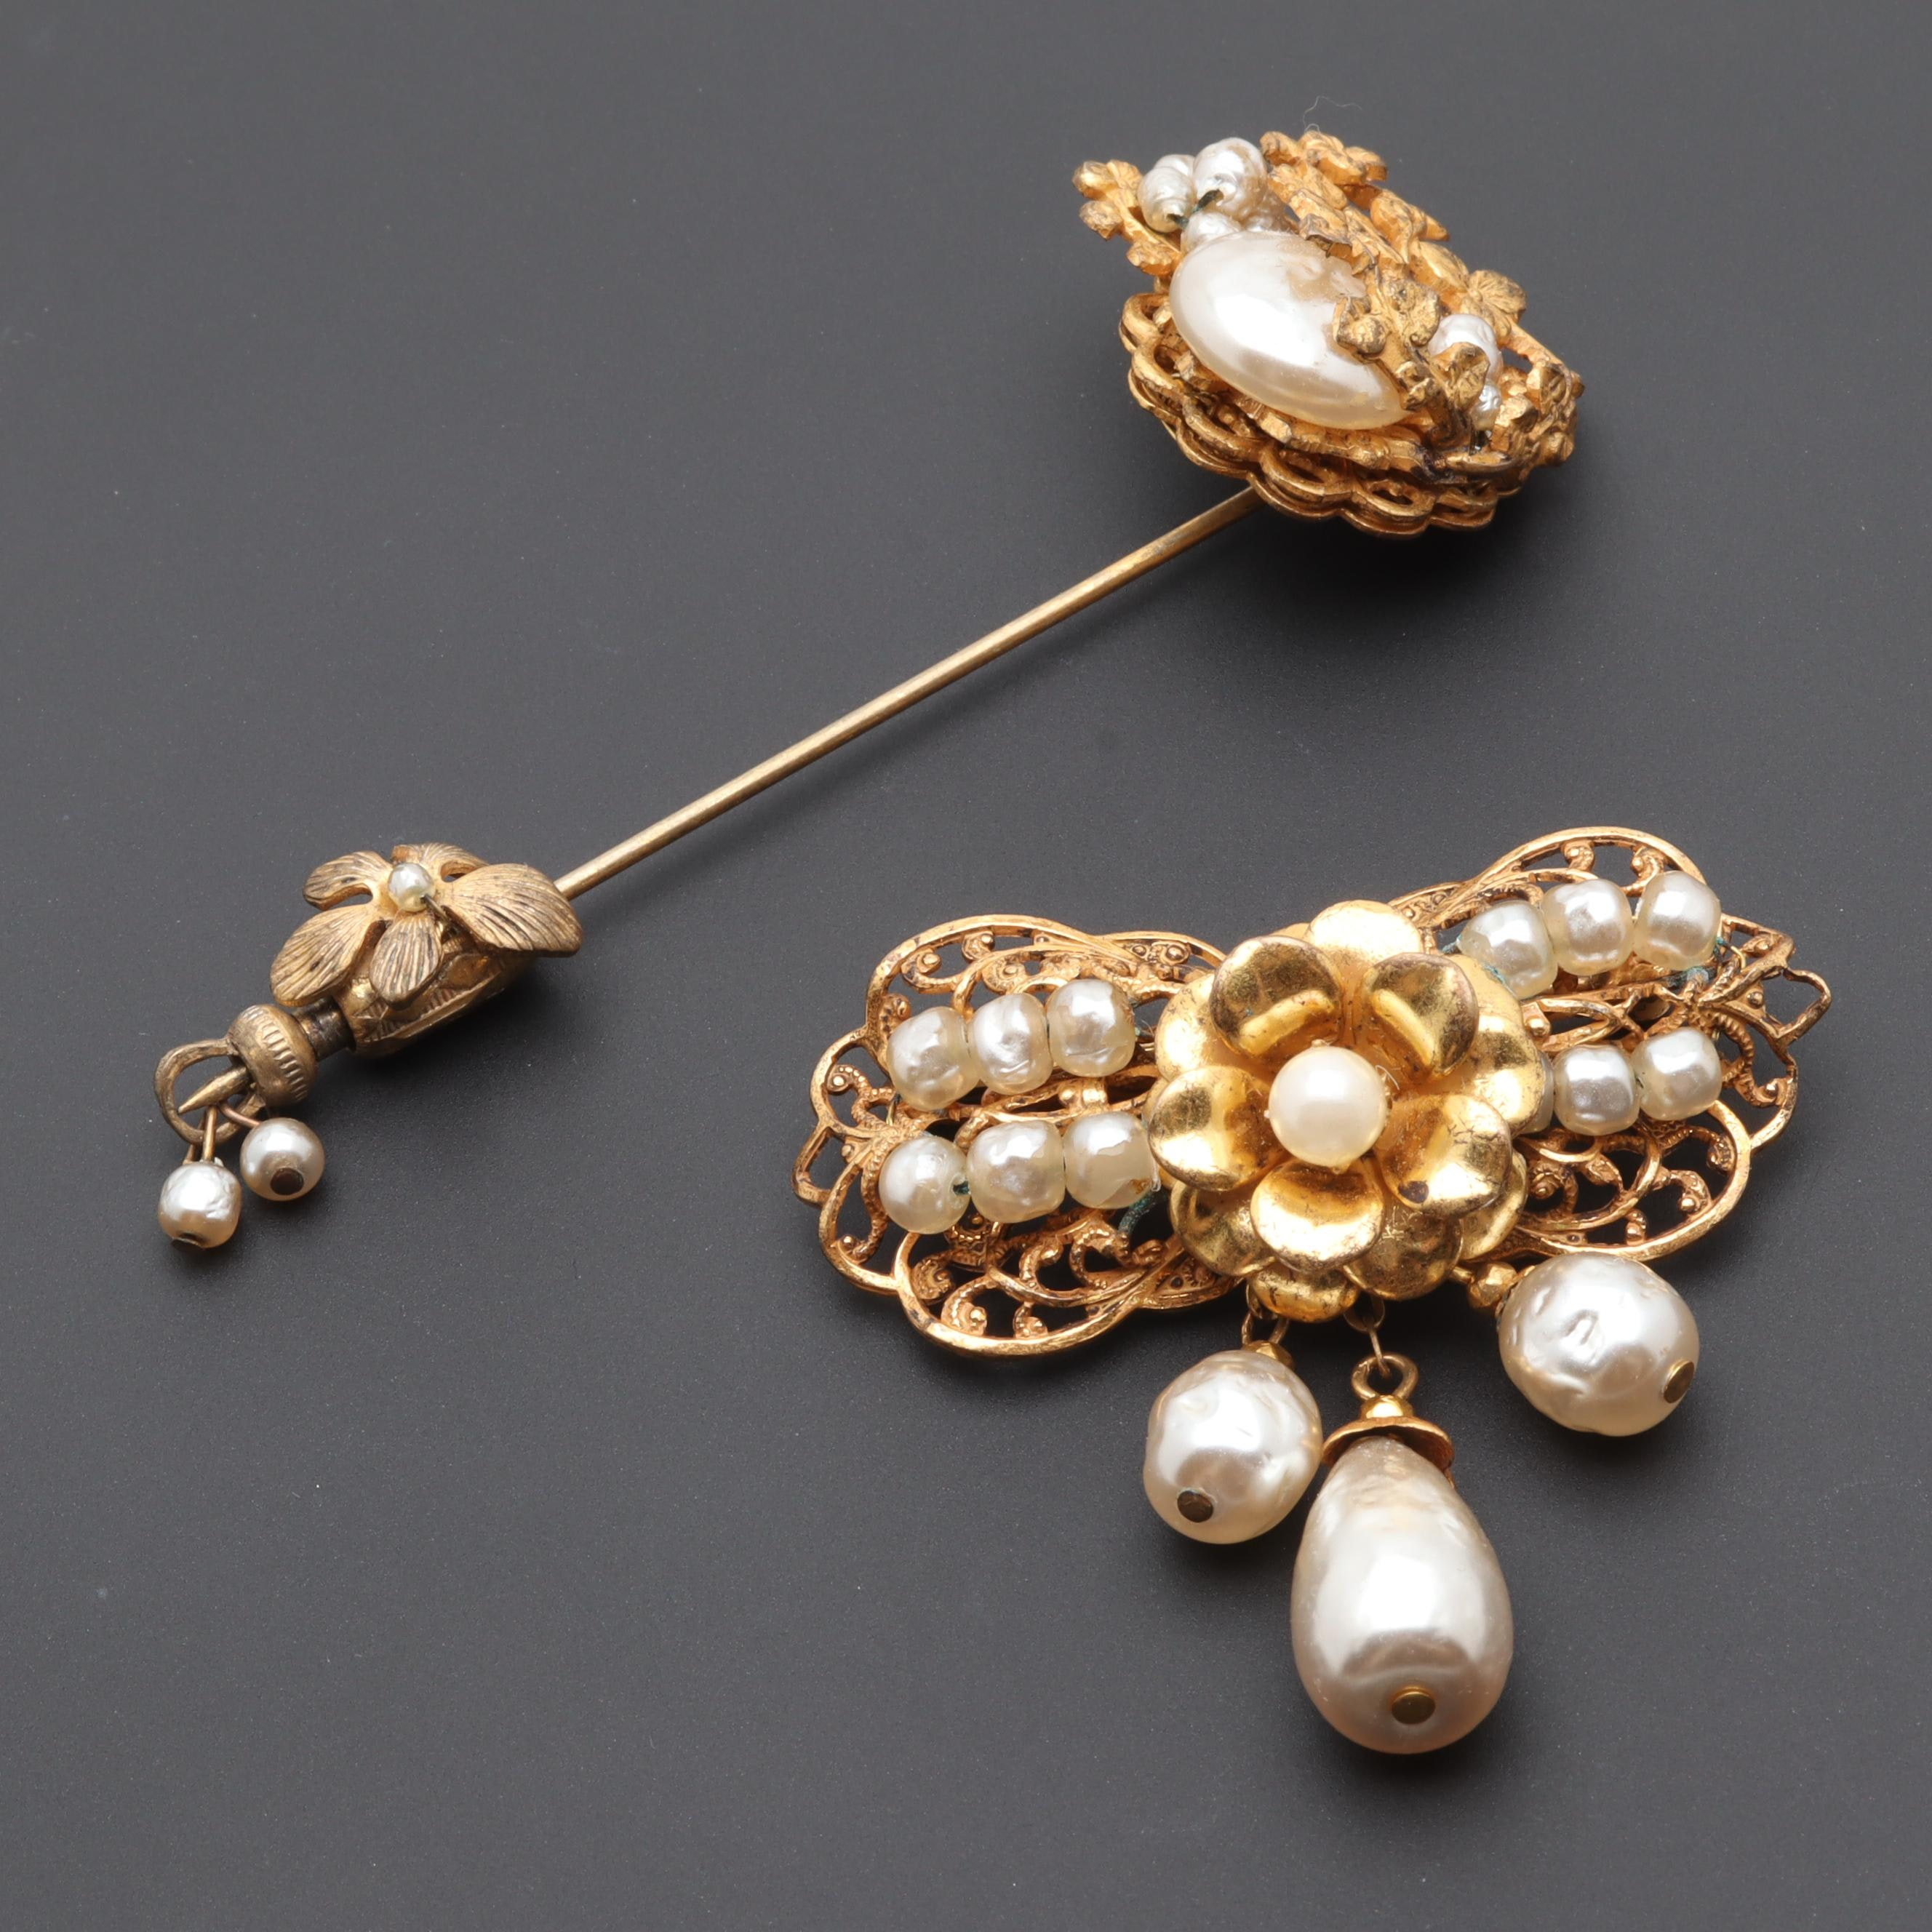 Circa 1980s Miriam Haskell Gold Tone and Imitation Pearl Brooch and Pin